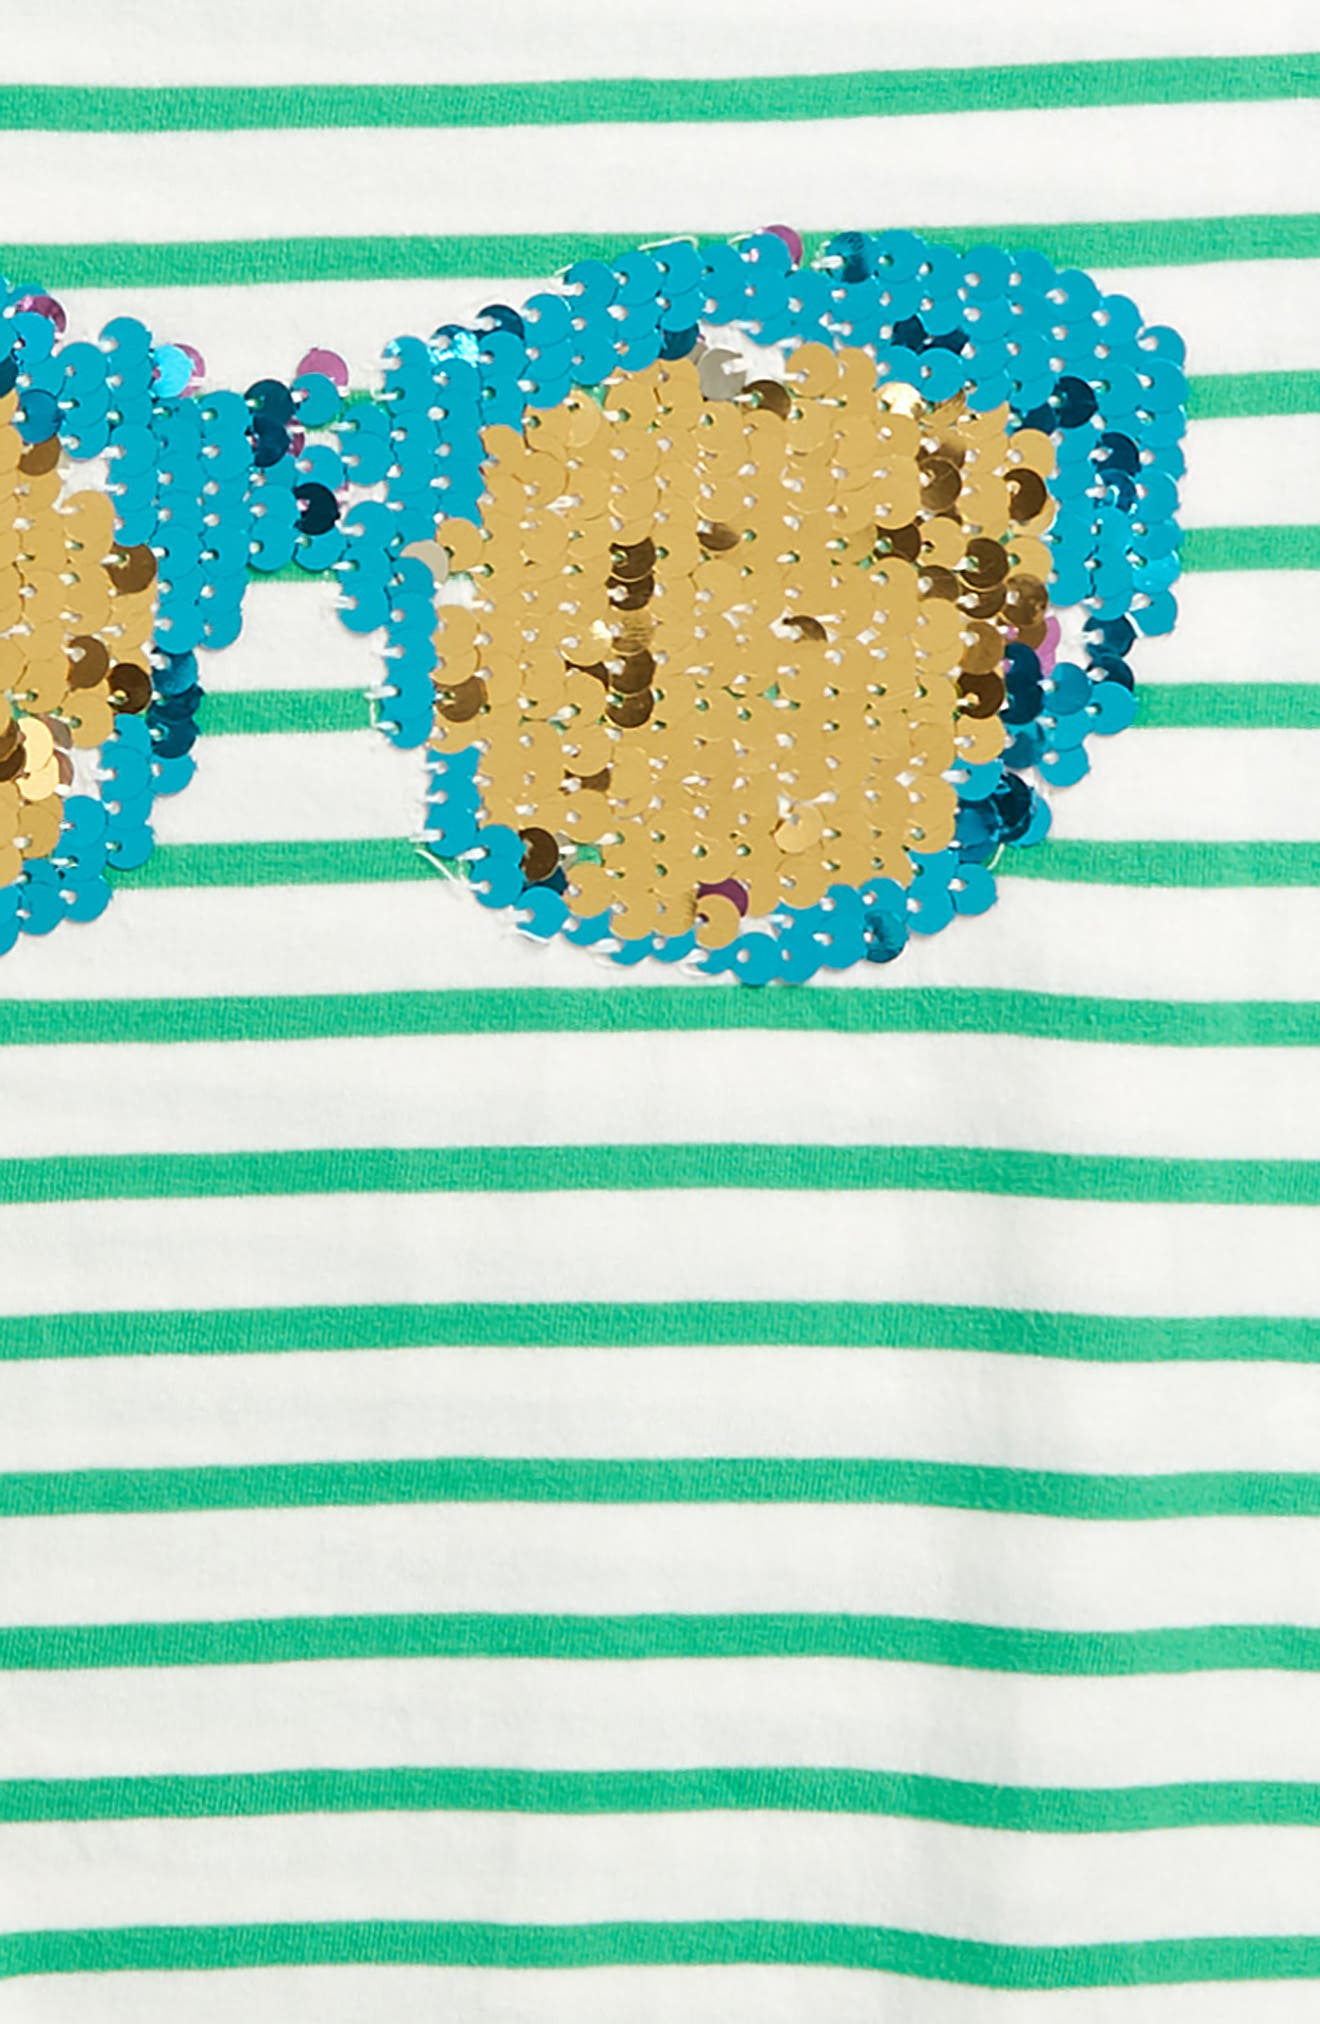 Sunny Sequin Tee,                             Alternate thumbnail 3, color,                             Grnivory/ Peppermint Green